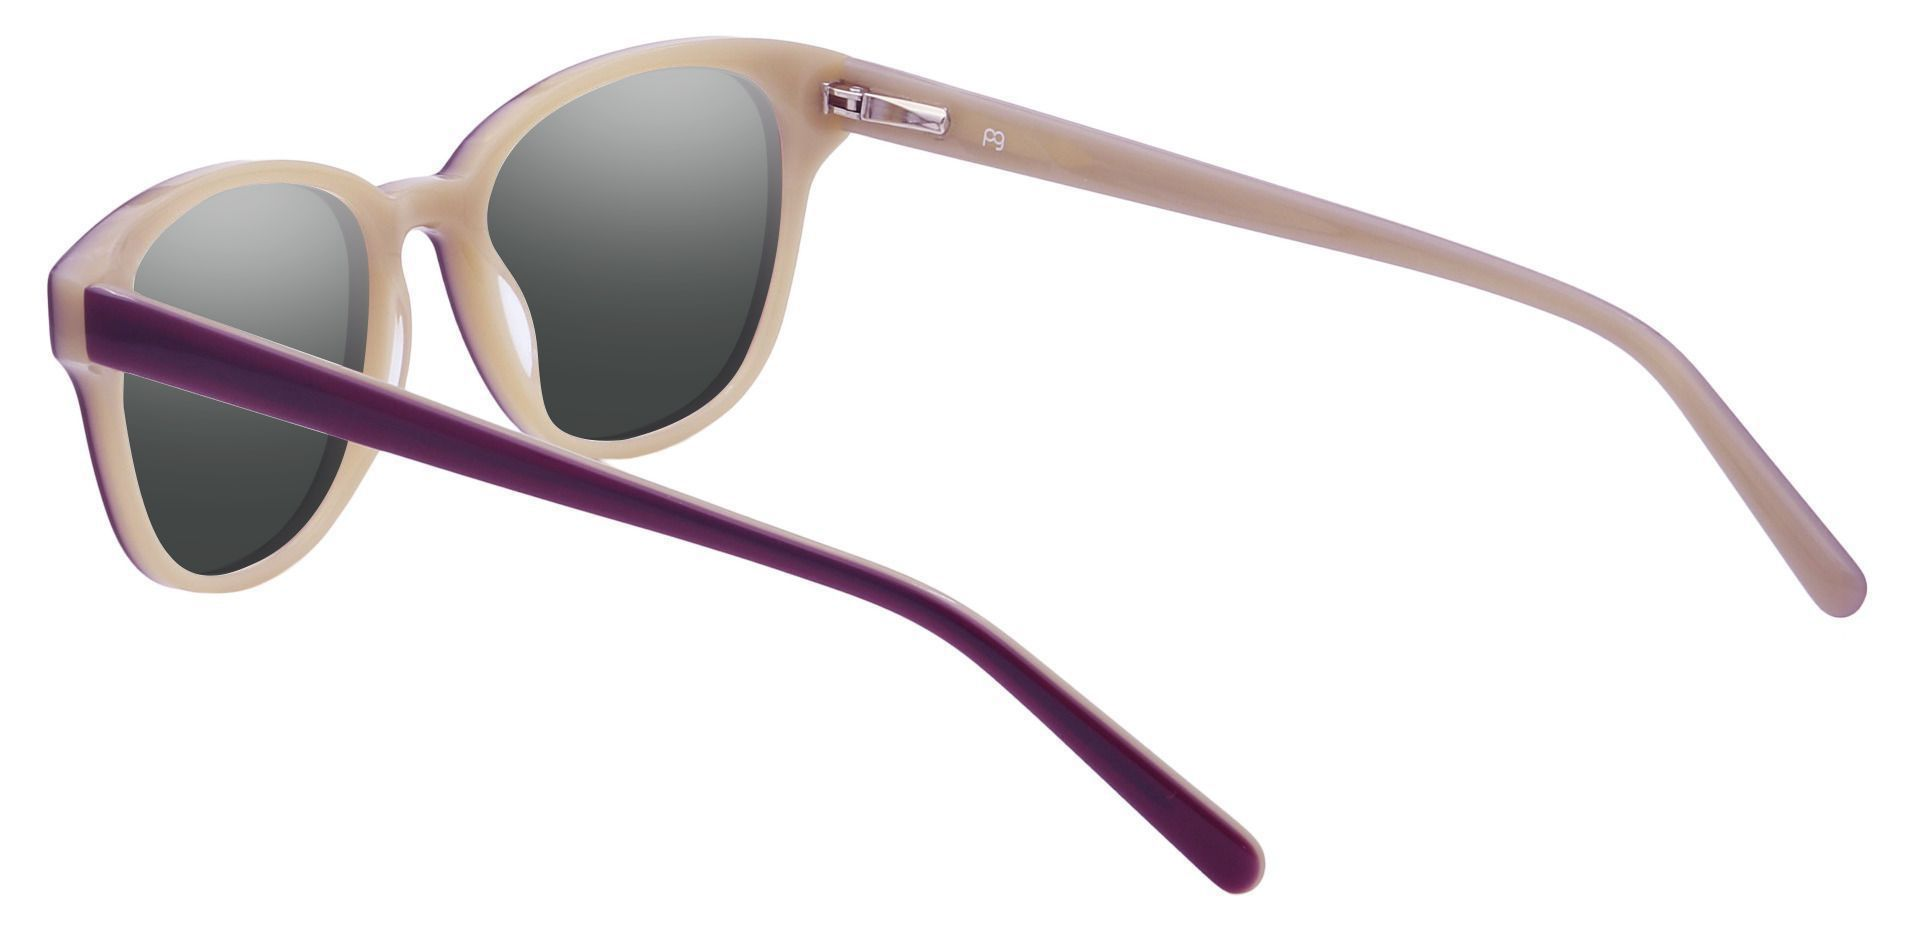 Elan Classic Square Progressive Sunglasses - Purple Frame With Gray Lenses